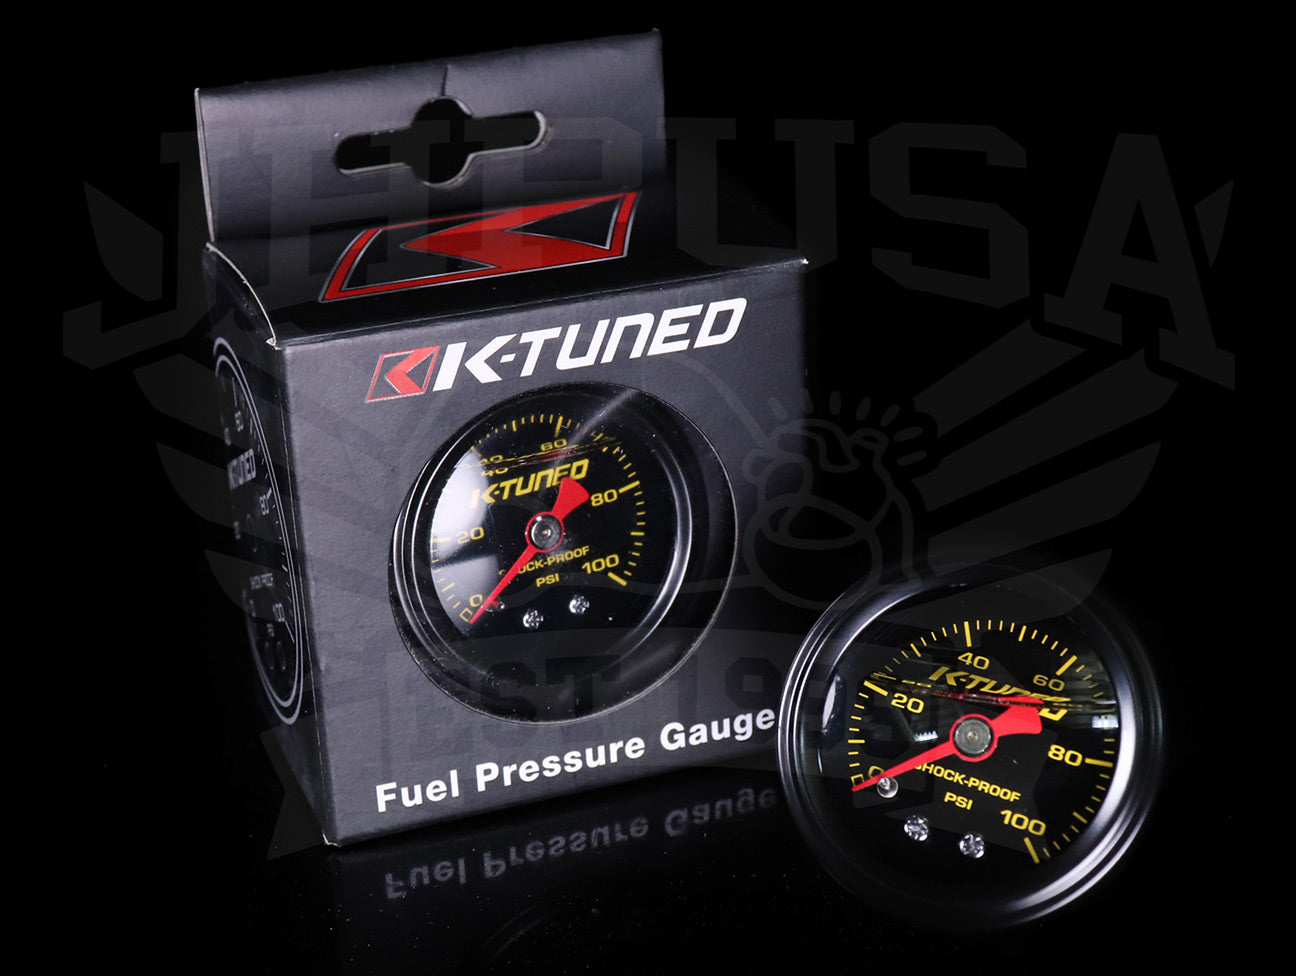 K-Tuned Liquid Filled Fuel Pressure Gauge (0-100psi)